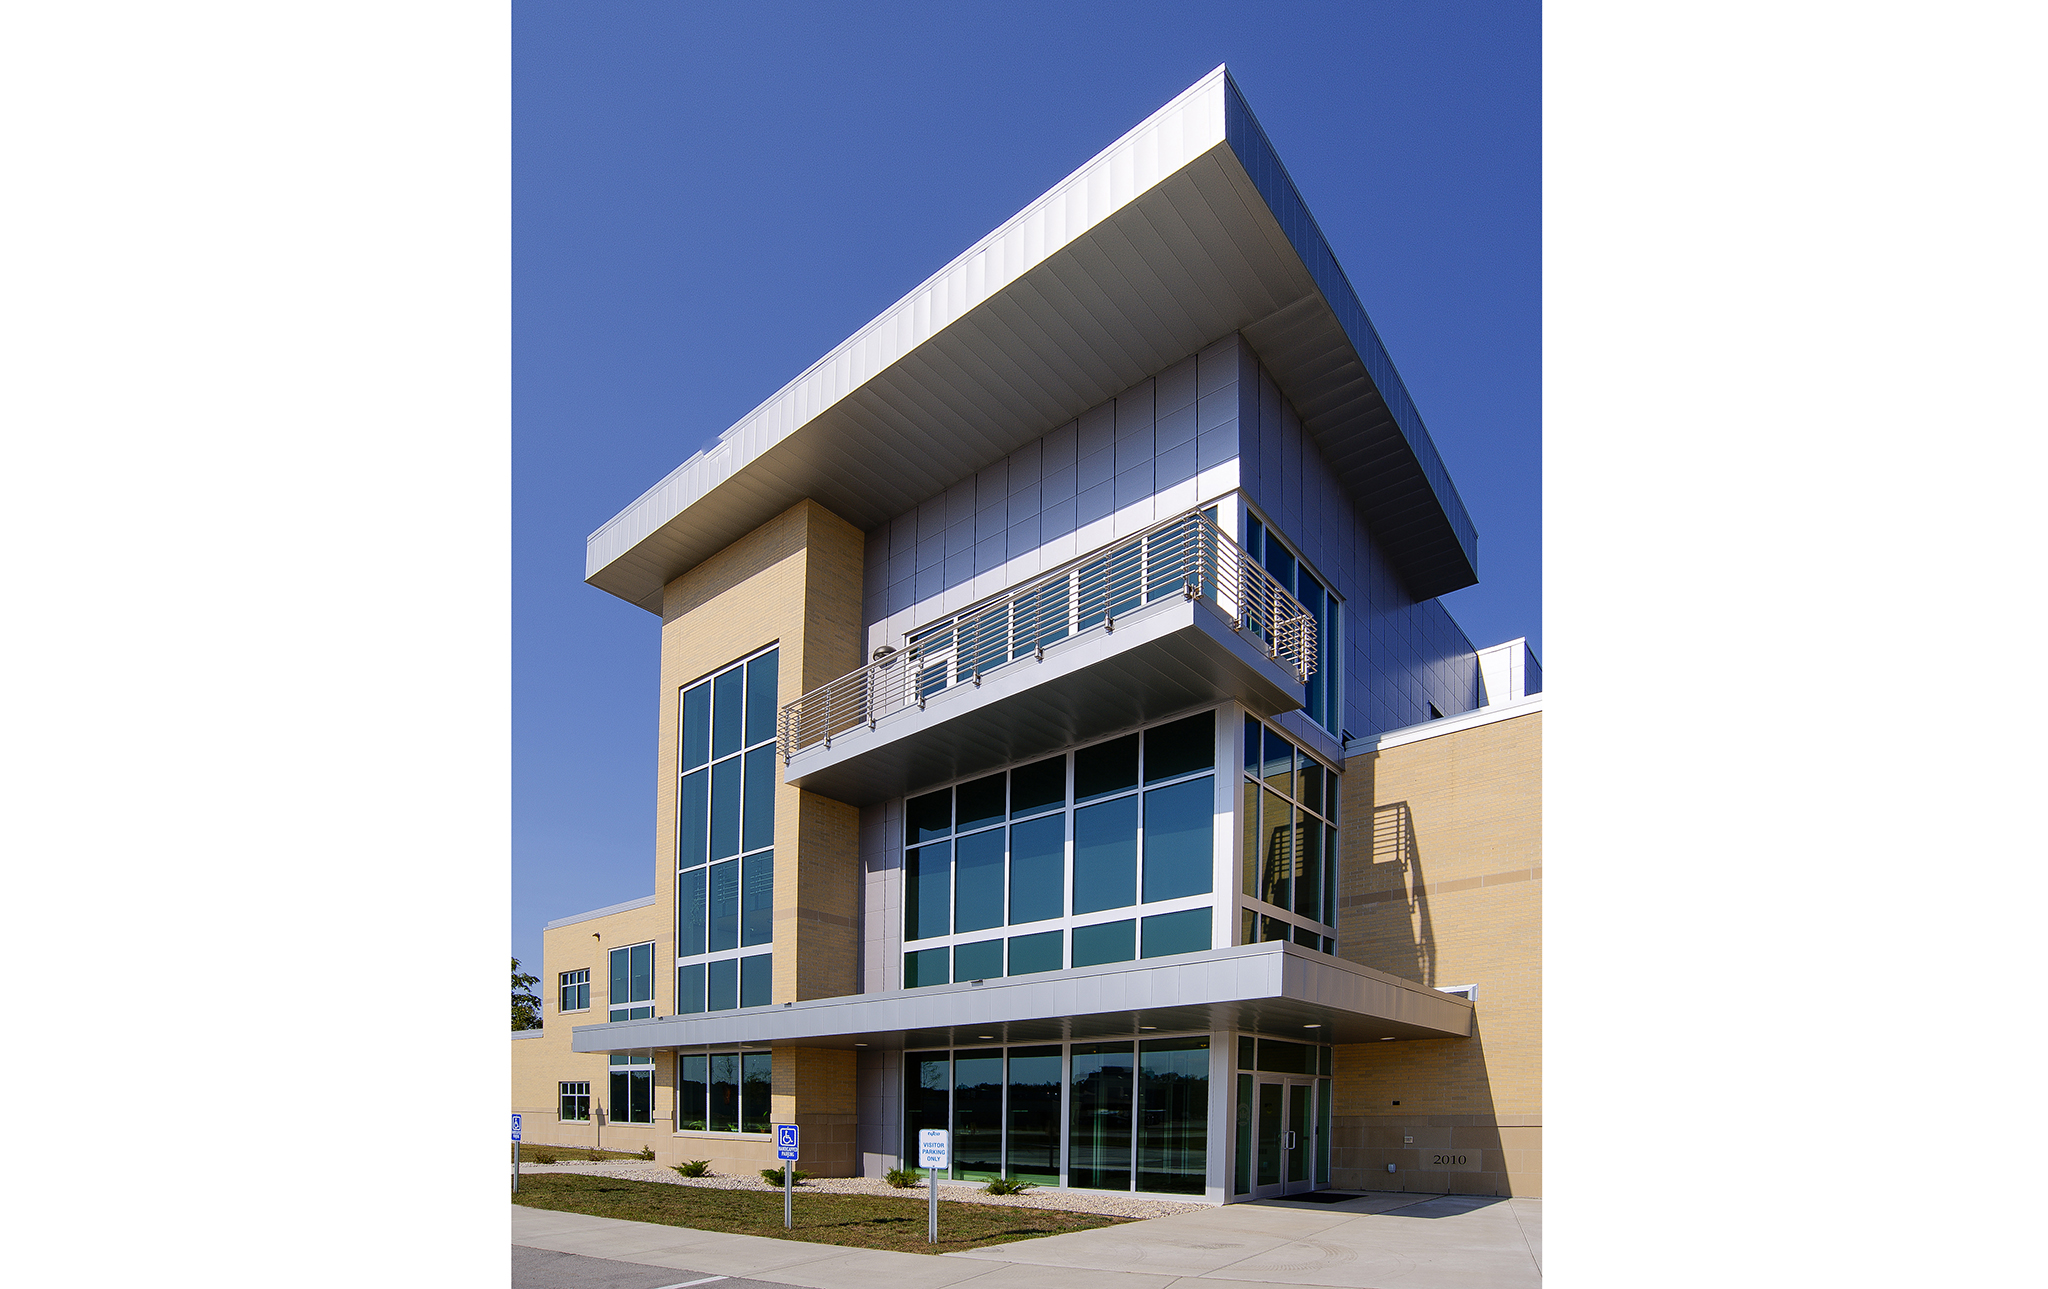 2_Tyco-Center-of-Excellence